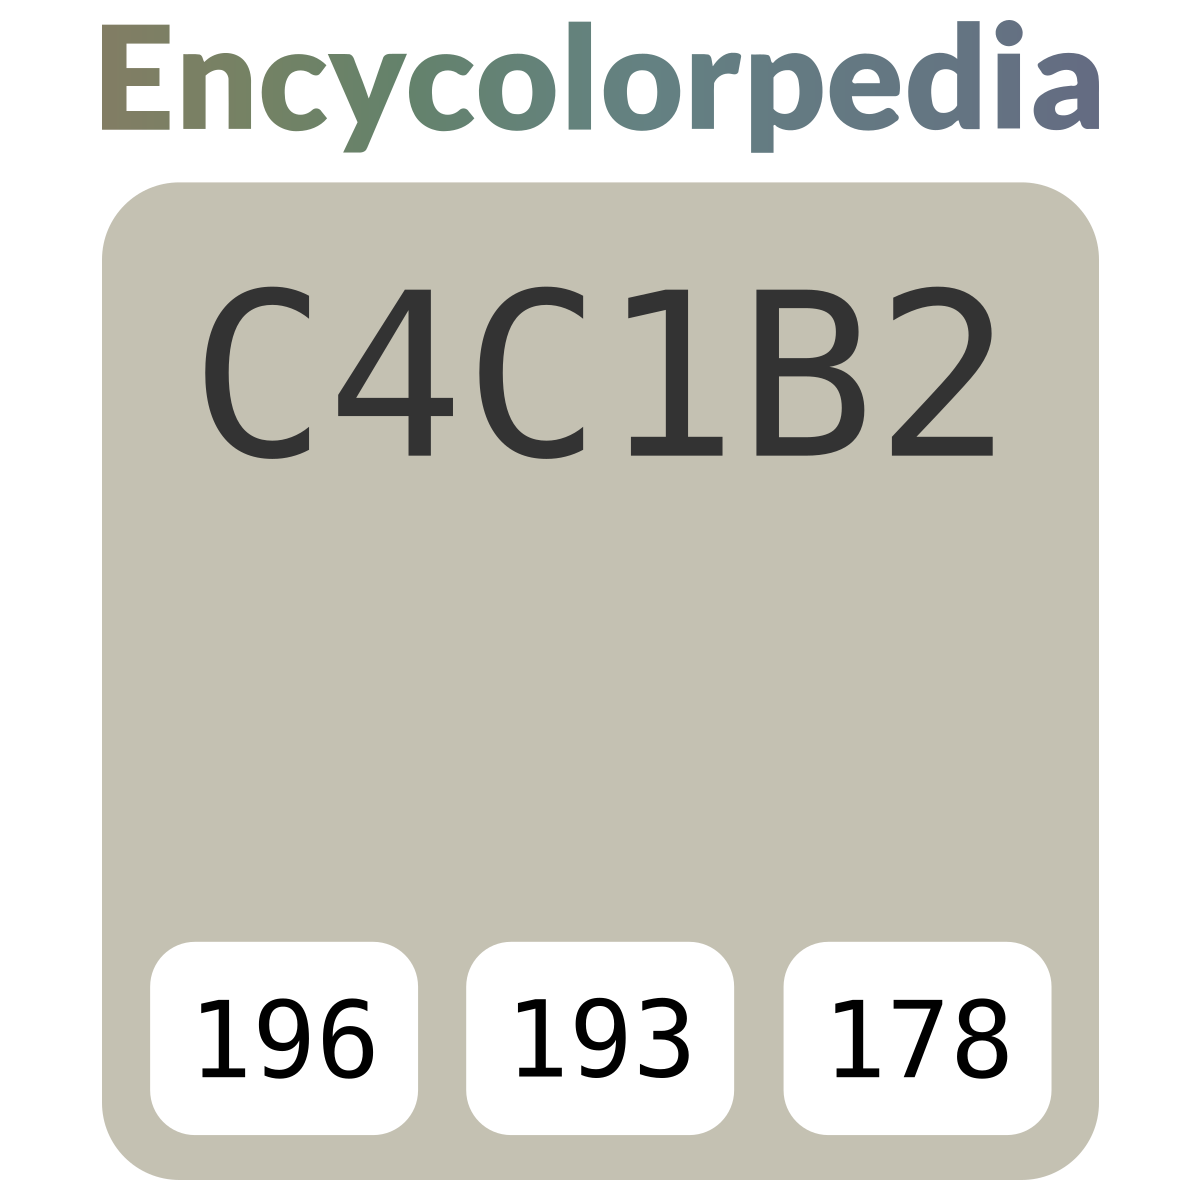 Color Tortora Ral 7044 pantone / pms p 178-1 c / #c4c1b2 hex color code, rgb and paints